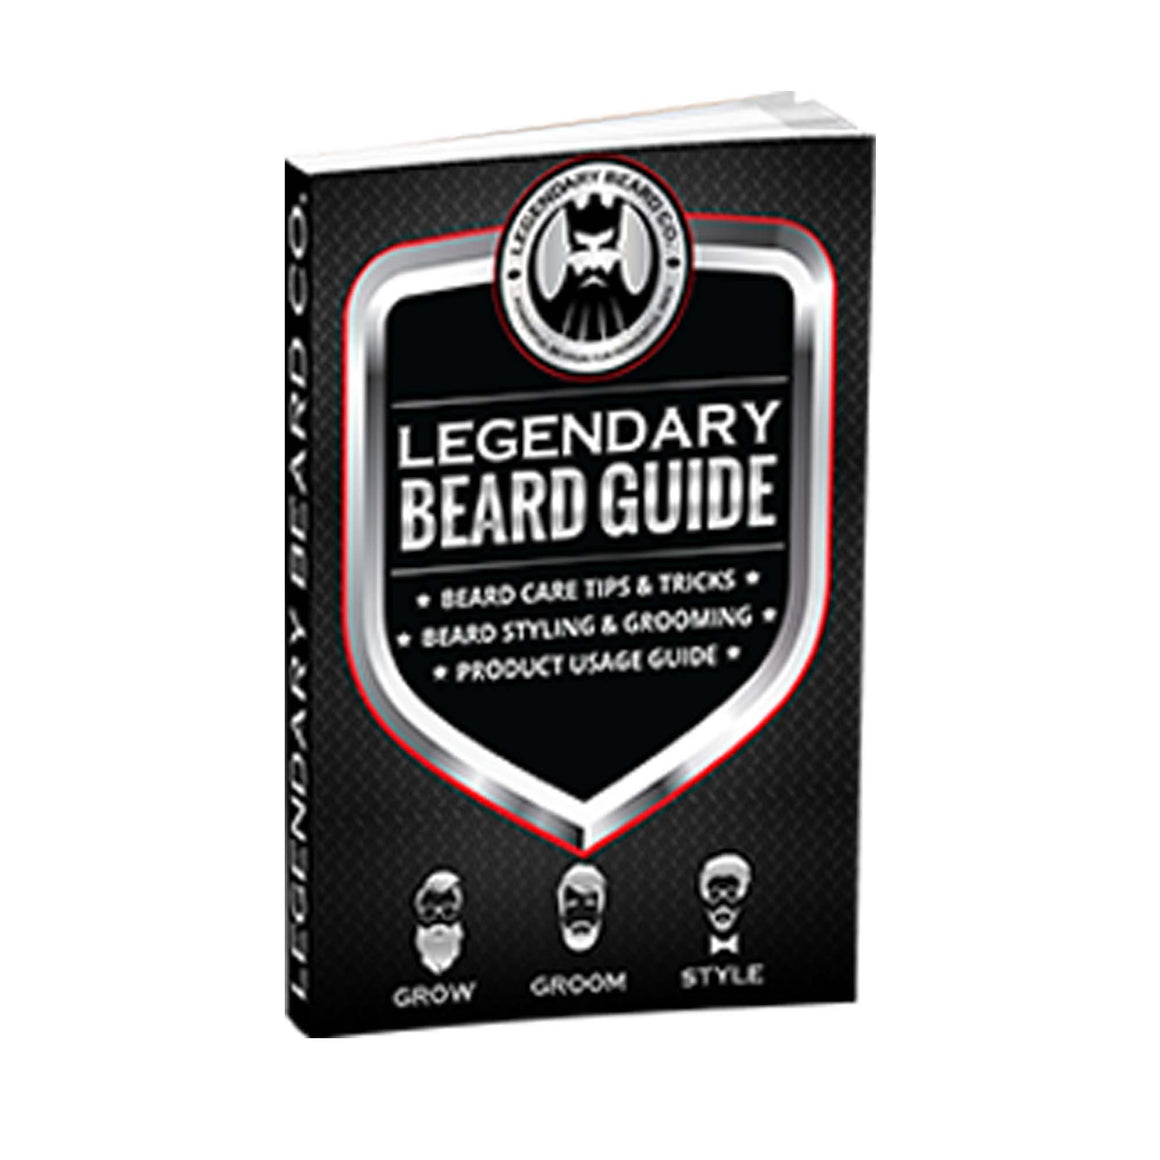 Legendary Beard Guide